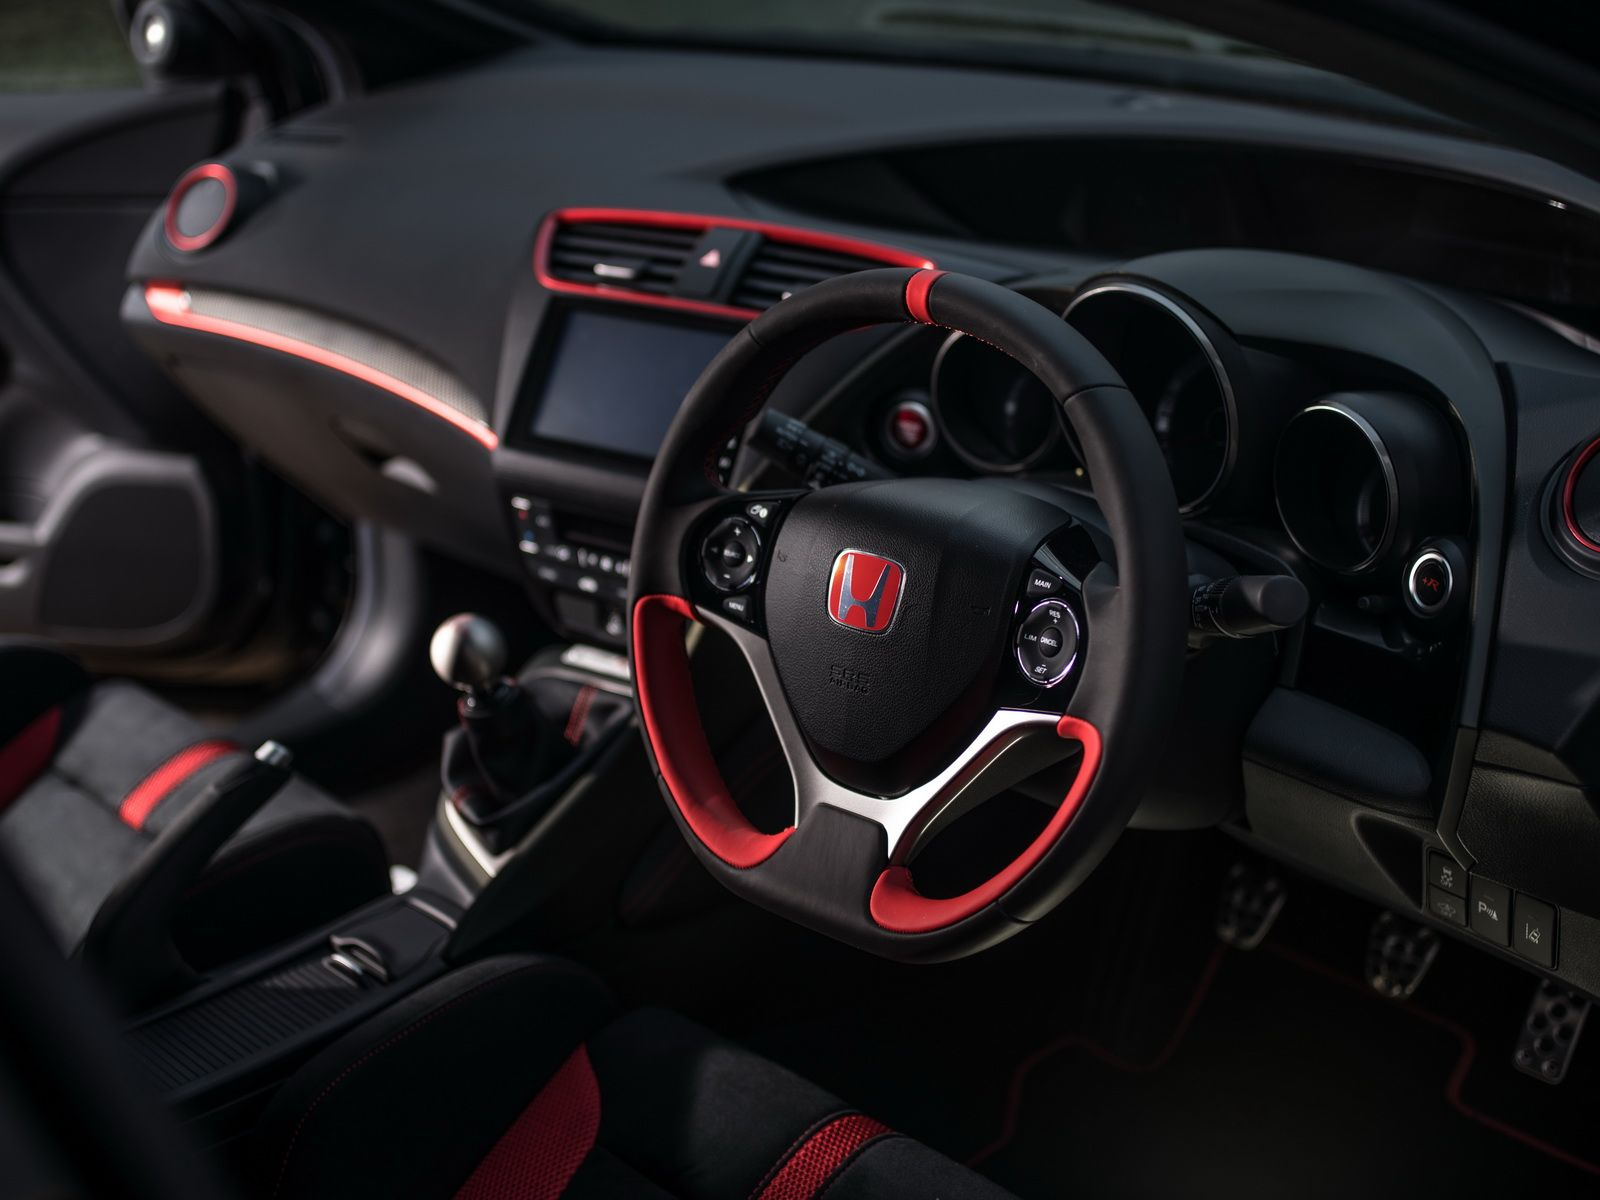 Honda Civic Type R Gains Limited Black Edition As A Send Off In The Uk Carscoops Honda Civic Type R Honda Civic Honda Civic Car